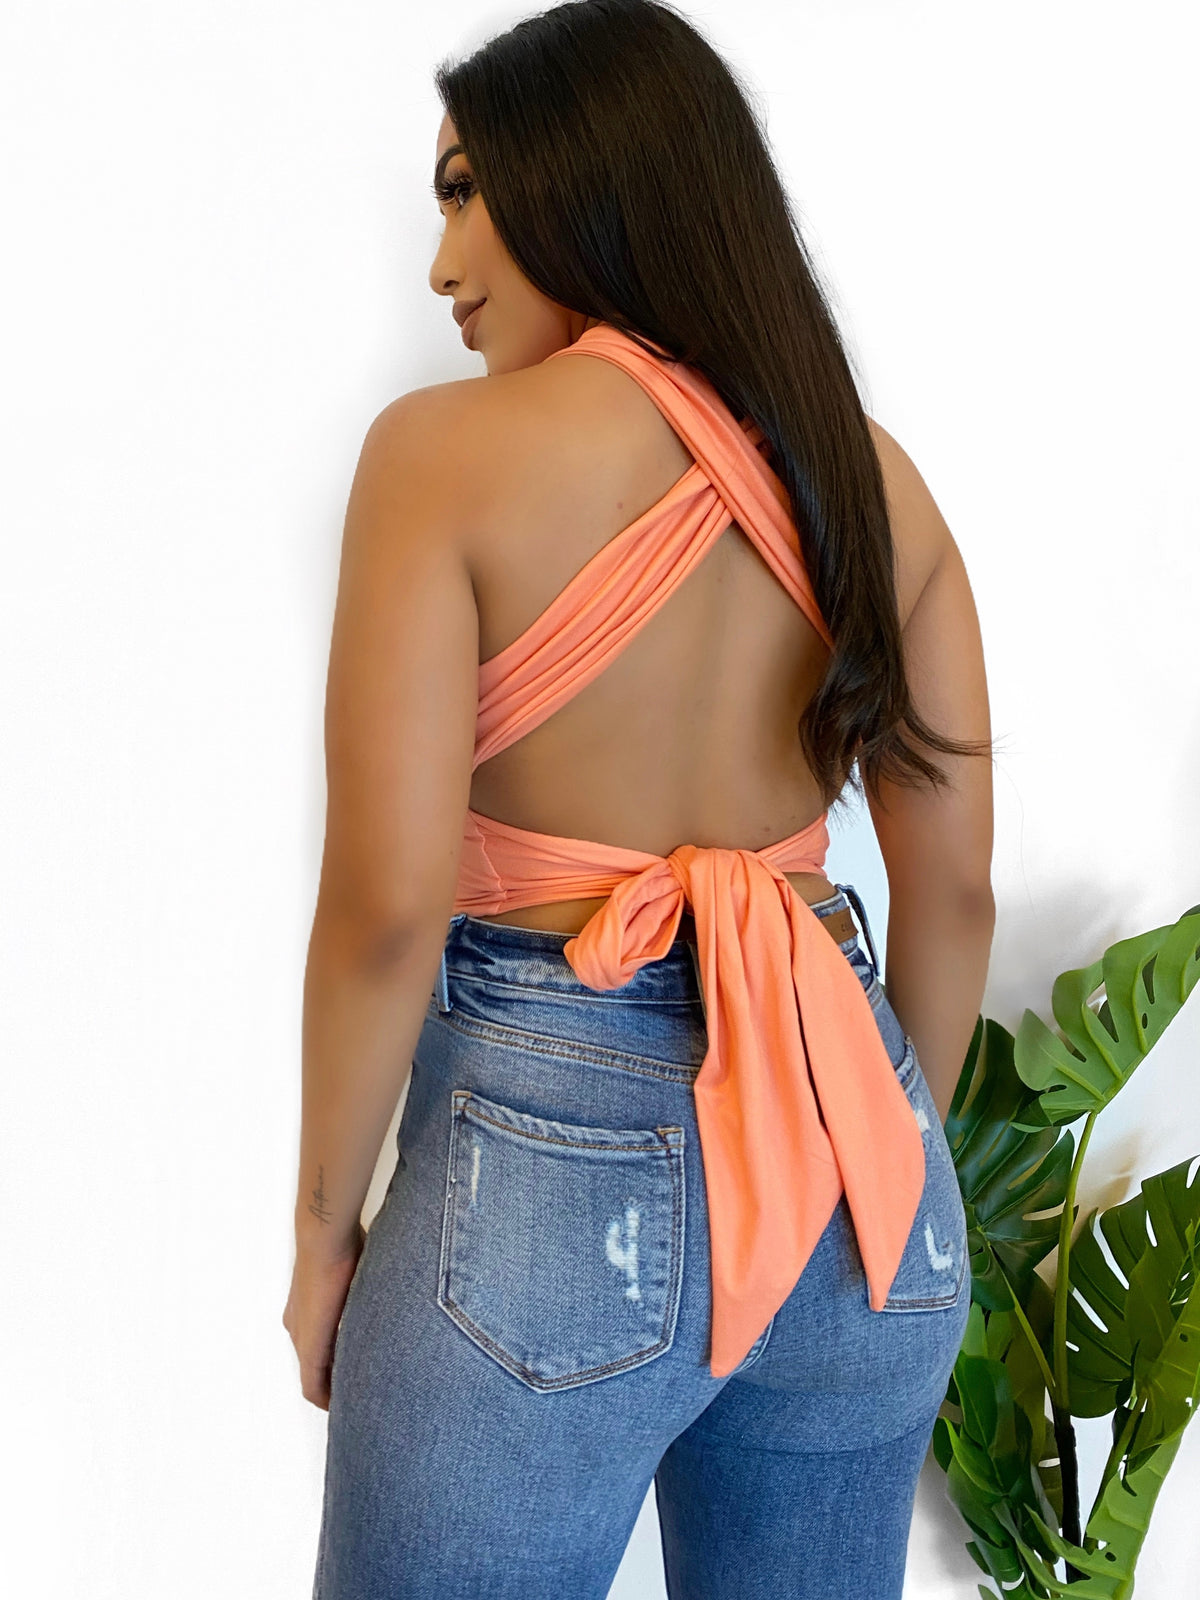 peach crop top, backless, self tie, high neck, above the belly button length